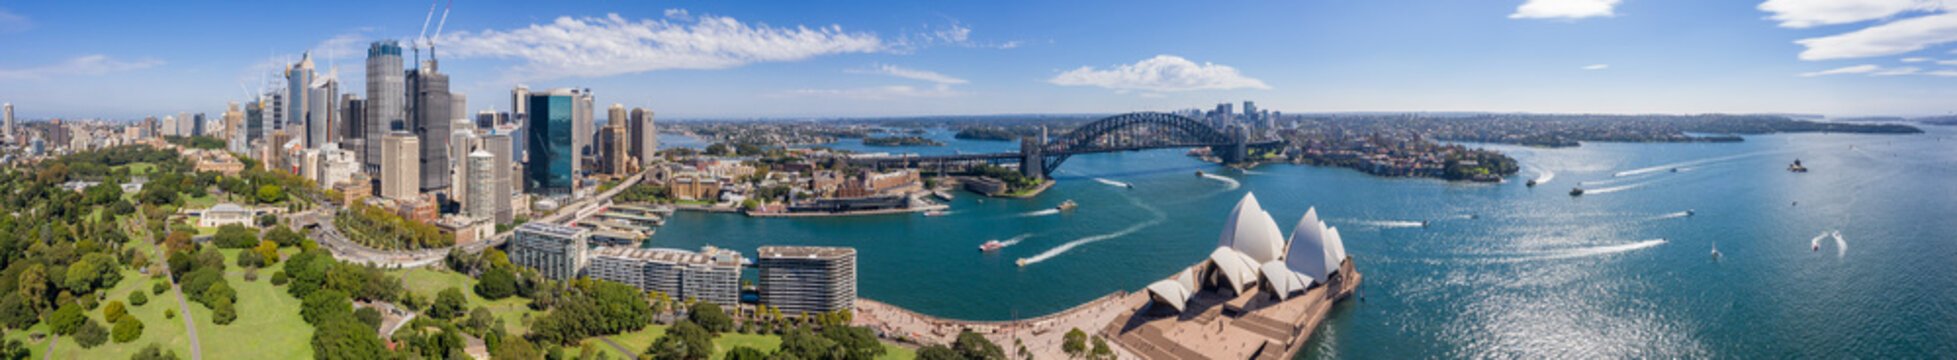 Aerial view from the Parade Ground gardens looking towards the CBD and the beautiful harbour in Sydney, Australia